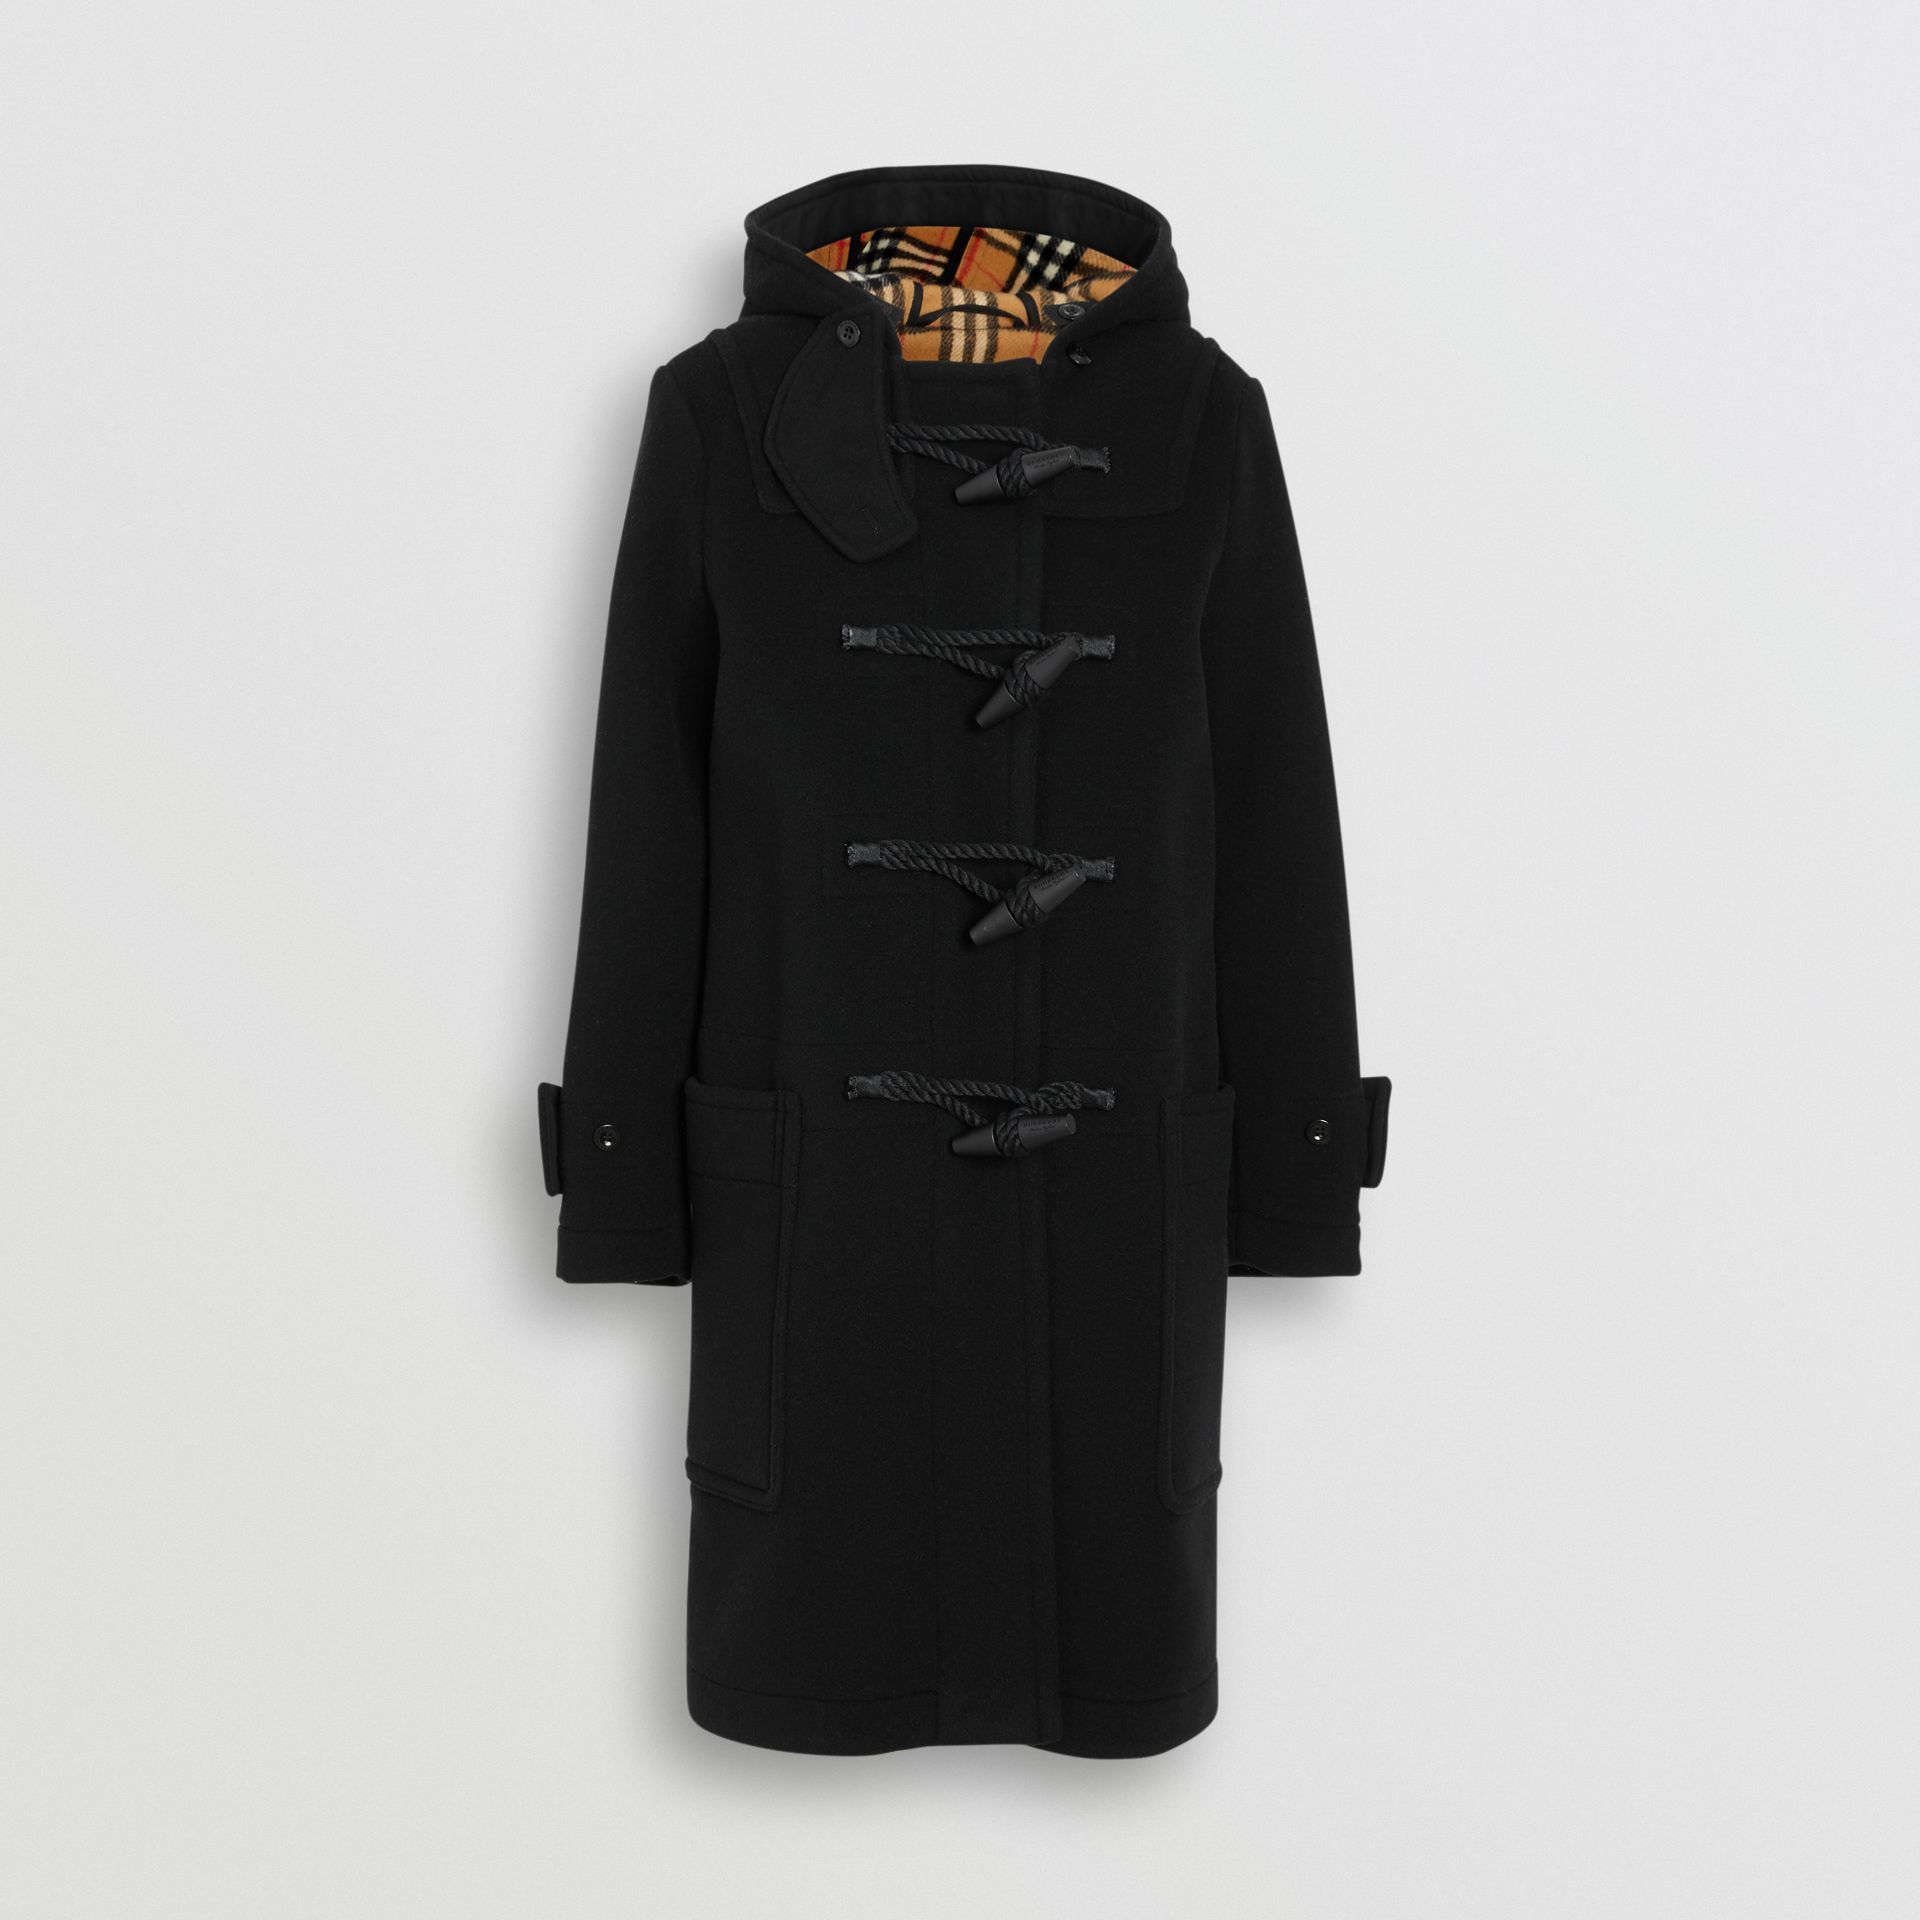 Wool Blend Duffle Coat in Black - Women | Burberry United Kingdom - gallery image 3